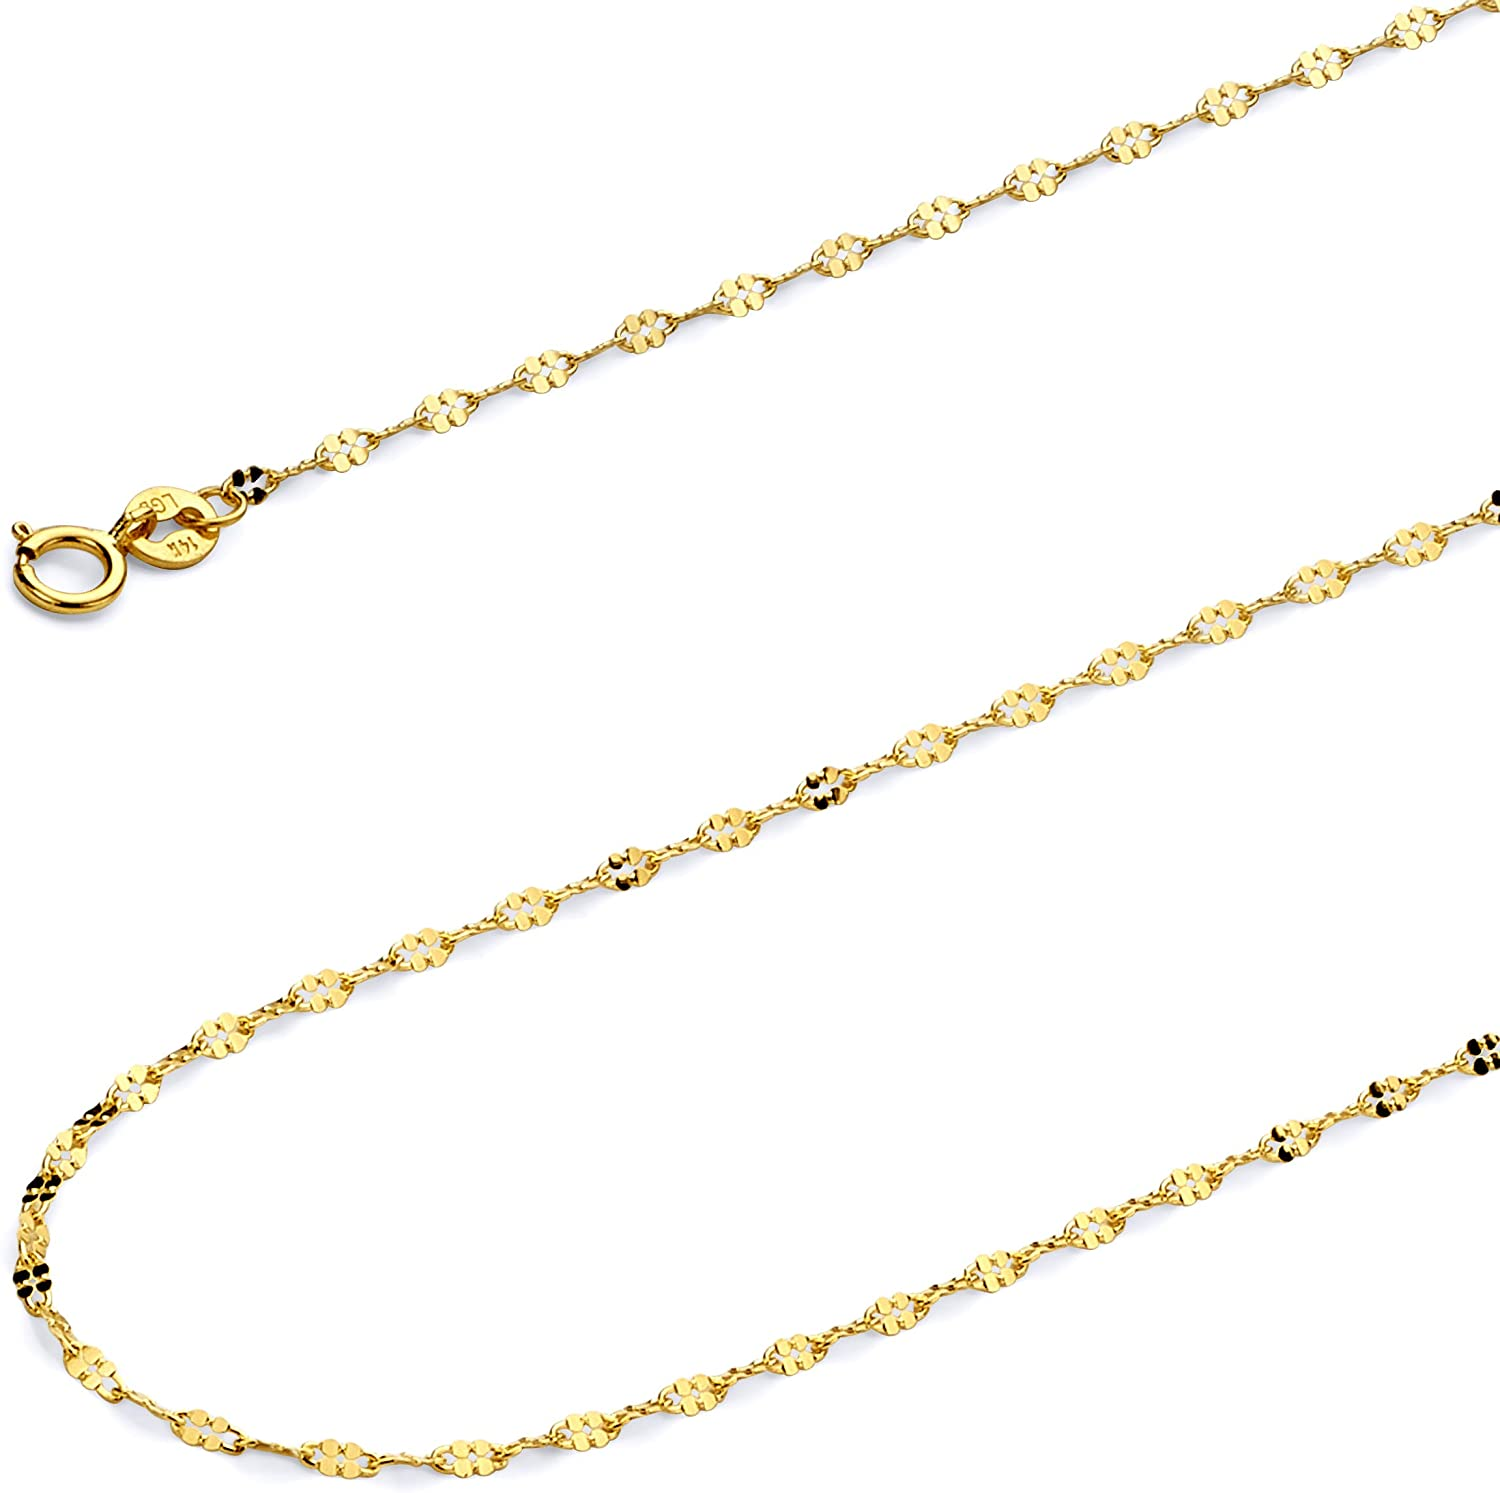 Wellingsale 14k Yellow Gold Polished Solid 1.7mm Twisted Mirror Chain Necklace with Spring Ring Clasp